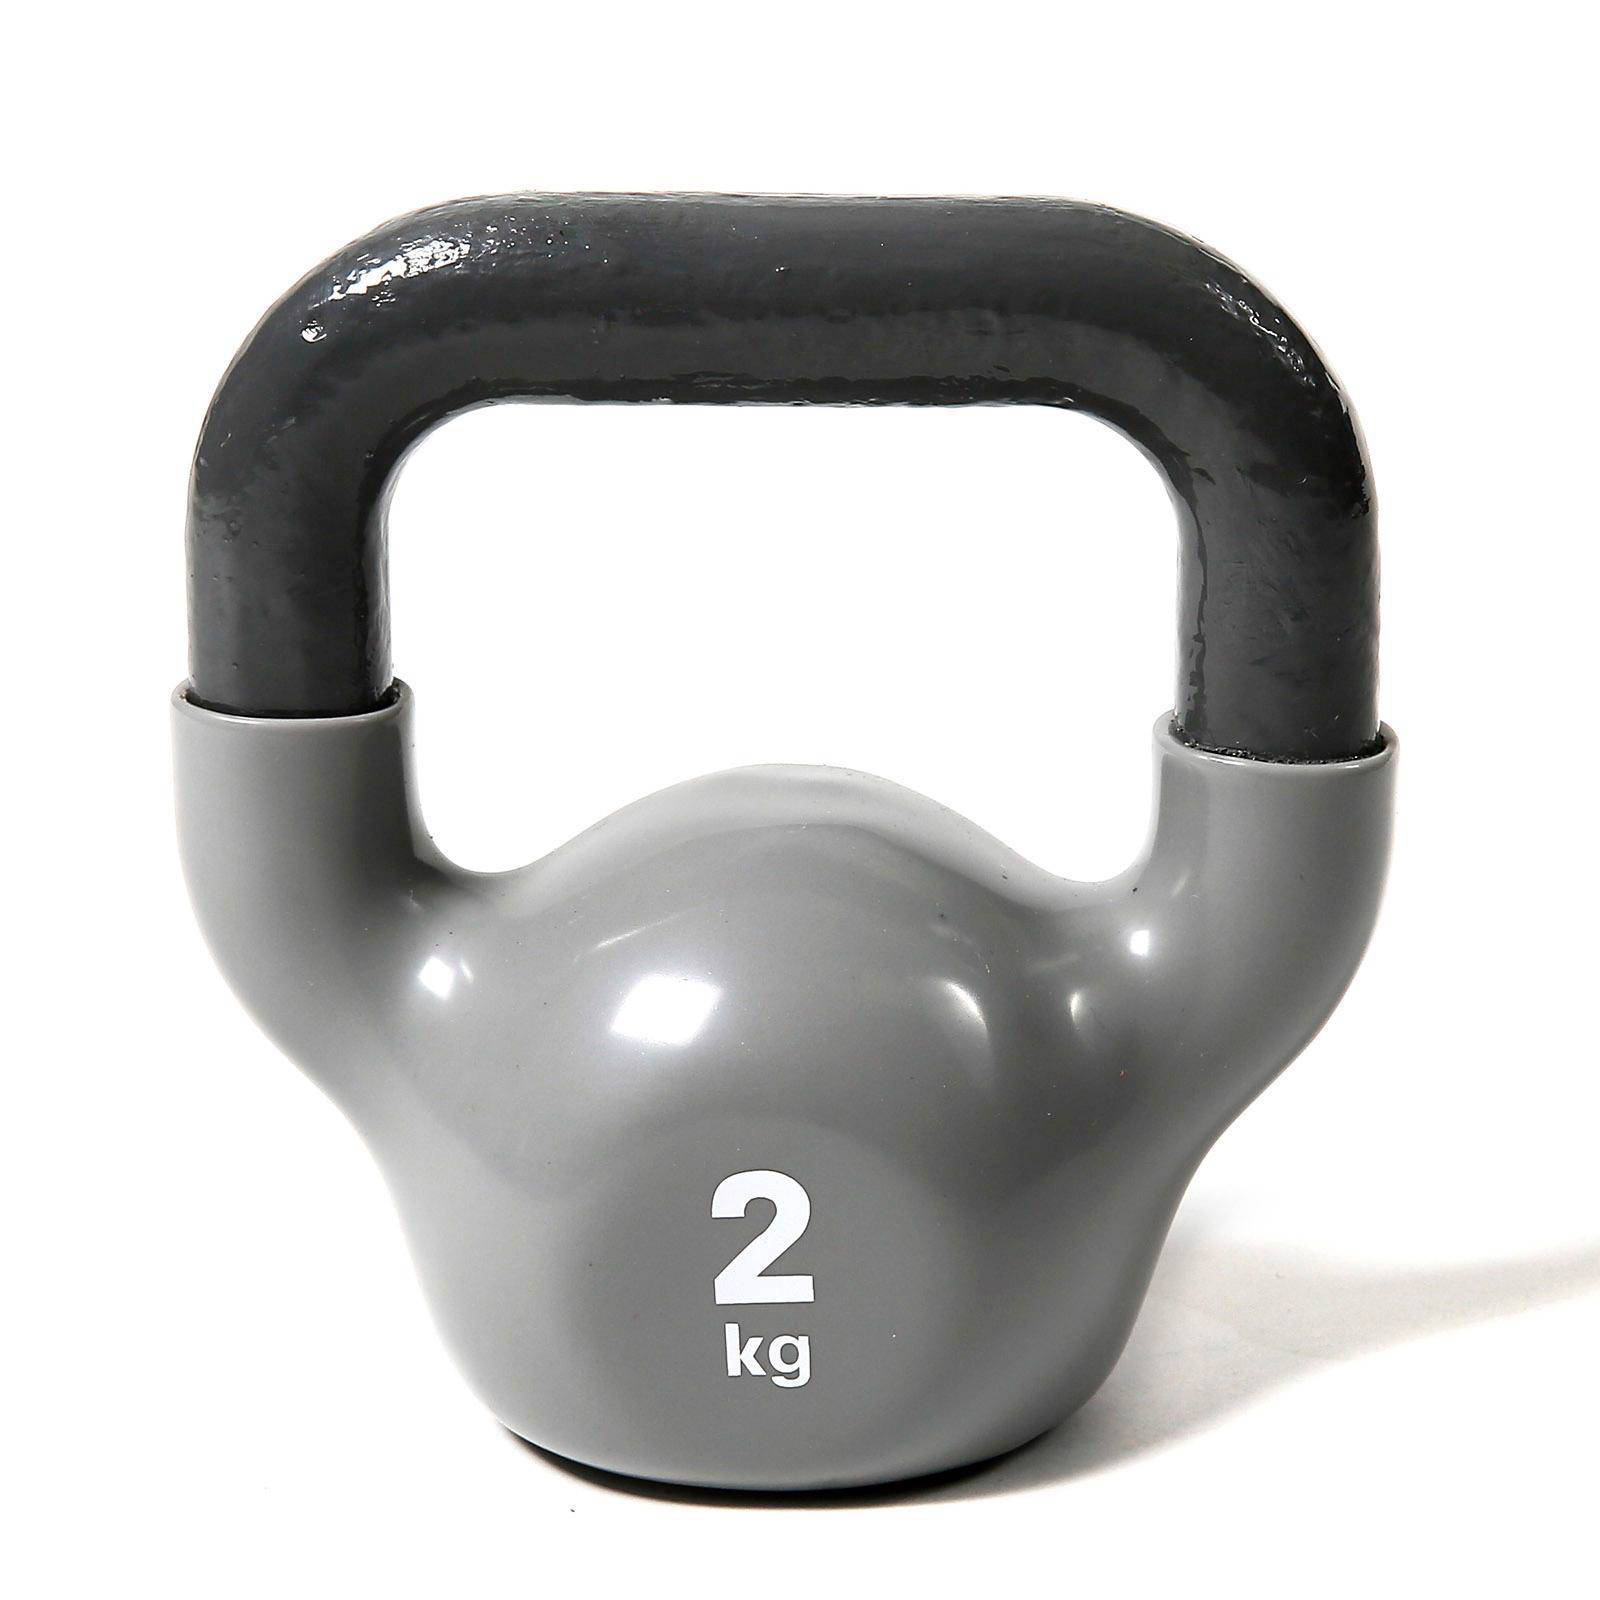 Reebok Women's training kettlebell 2 kg